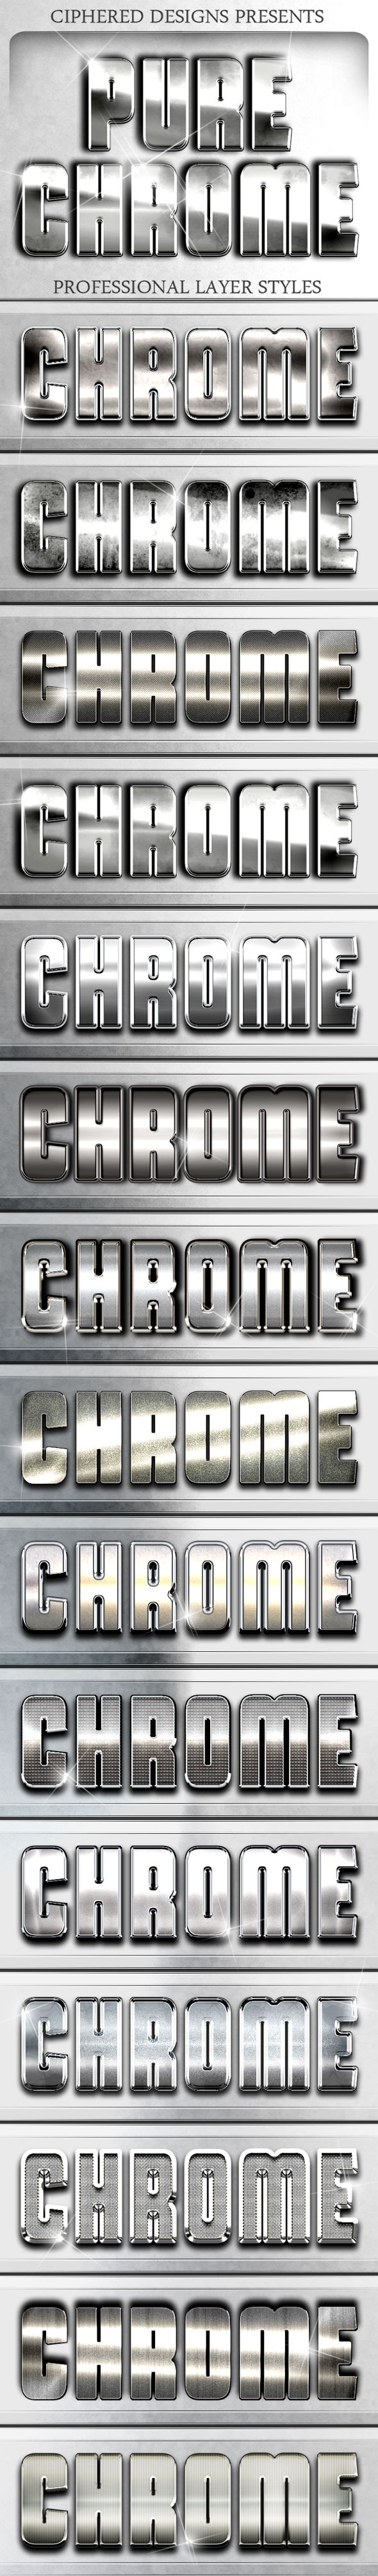 Pure Chrome - Professional Layer Styles - Text Effects Styles